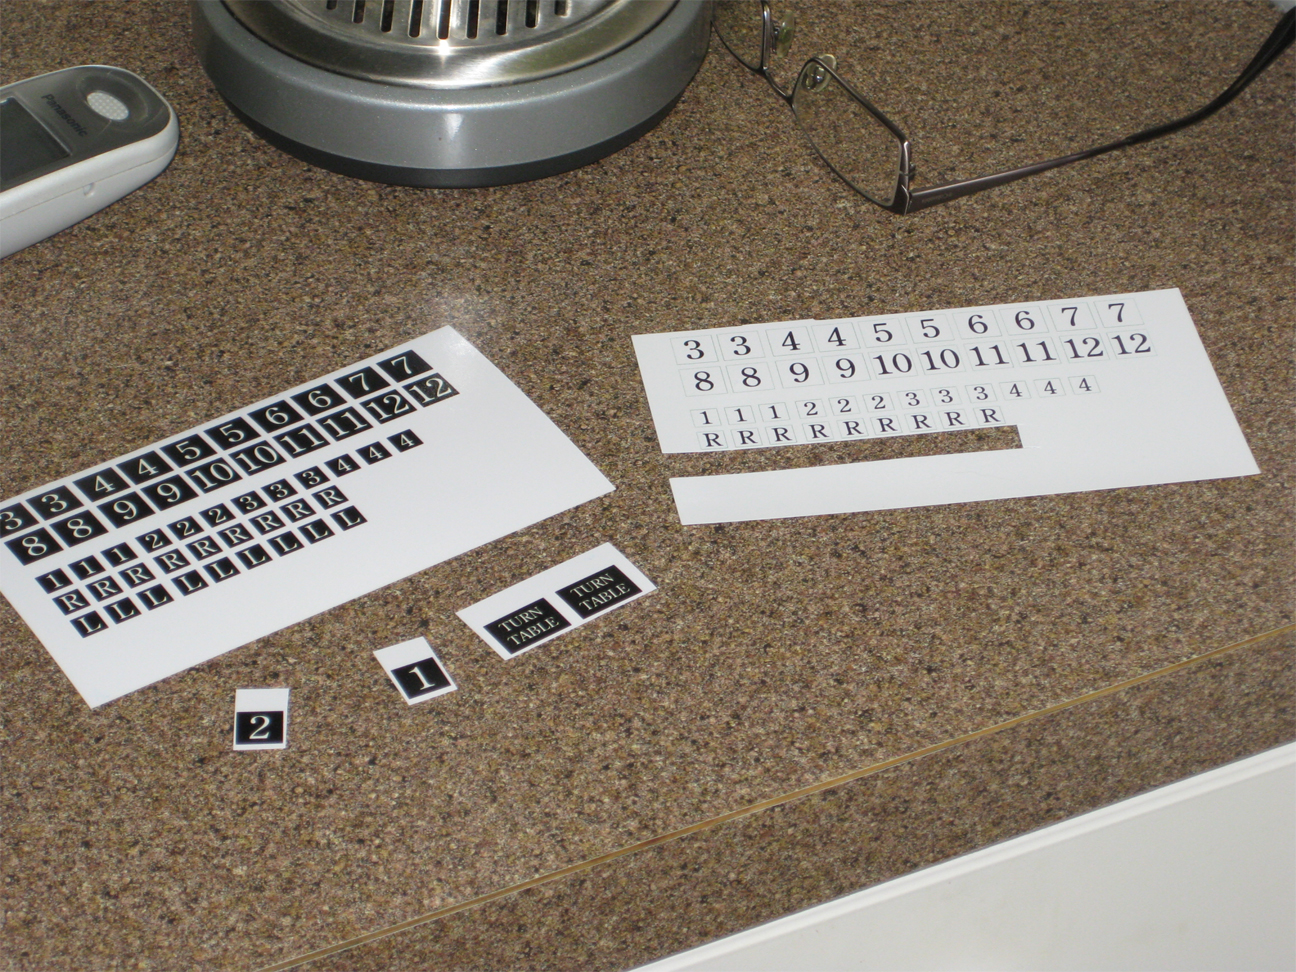 Homemade number and letter labels printed on photo paper for Atlas selectors and Atlas switches